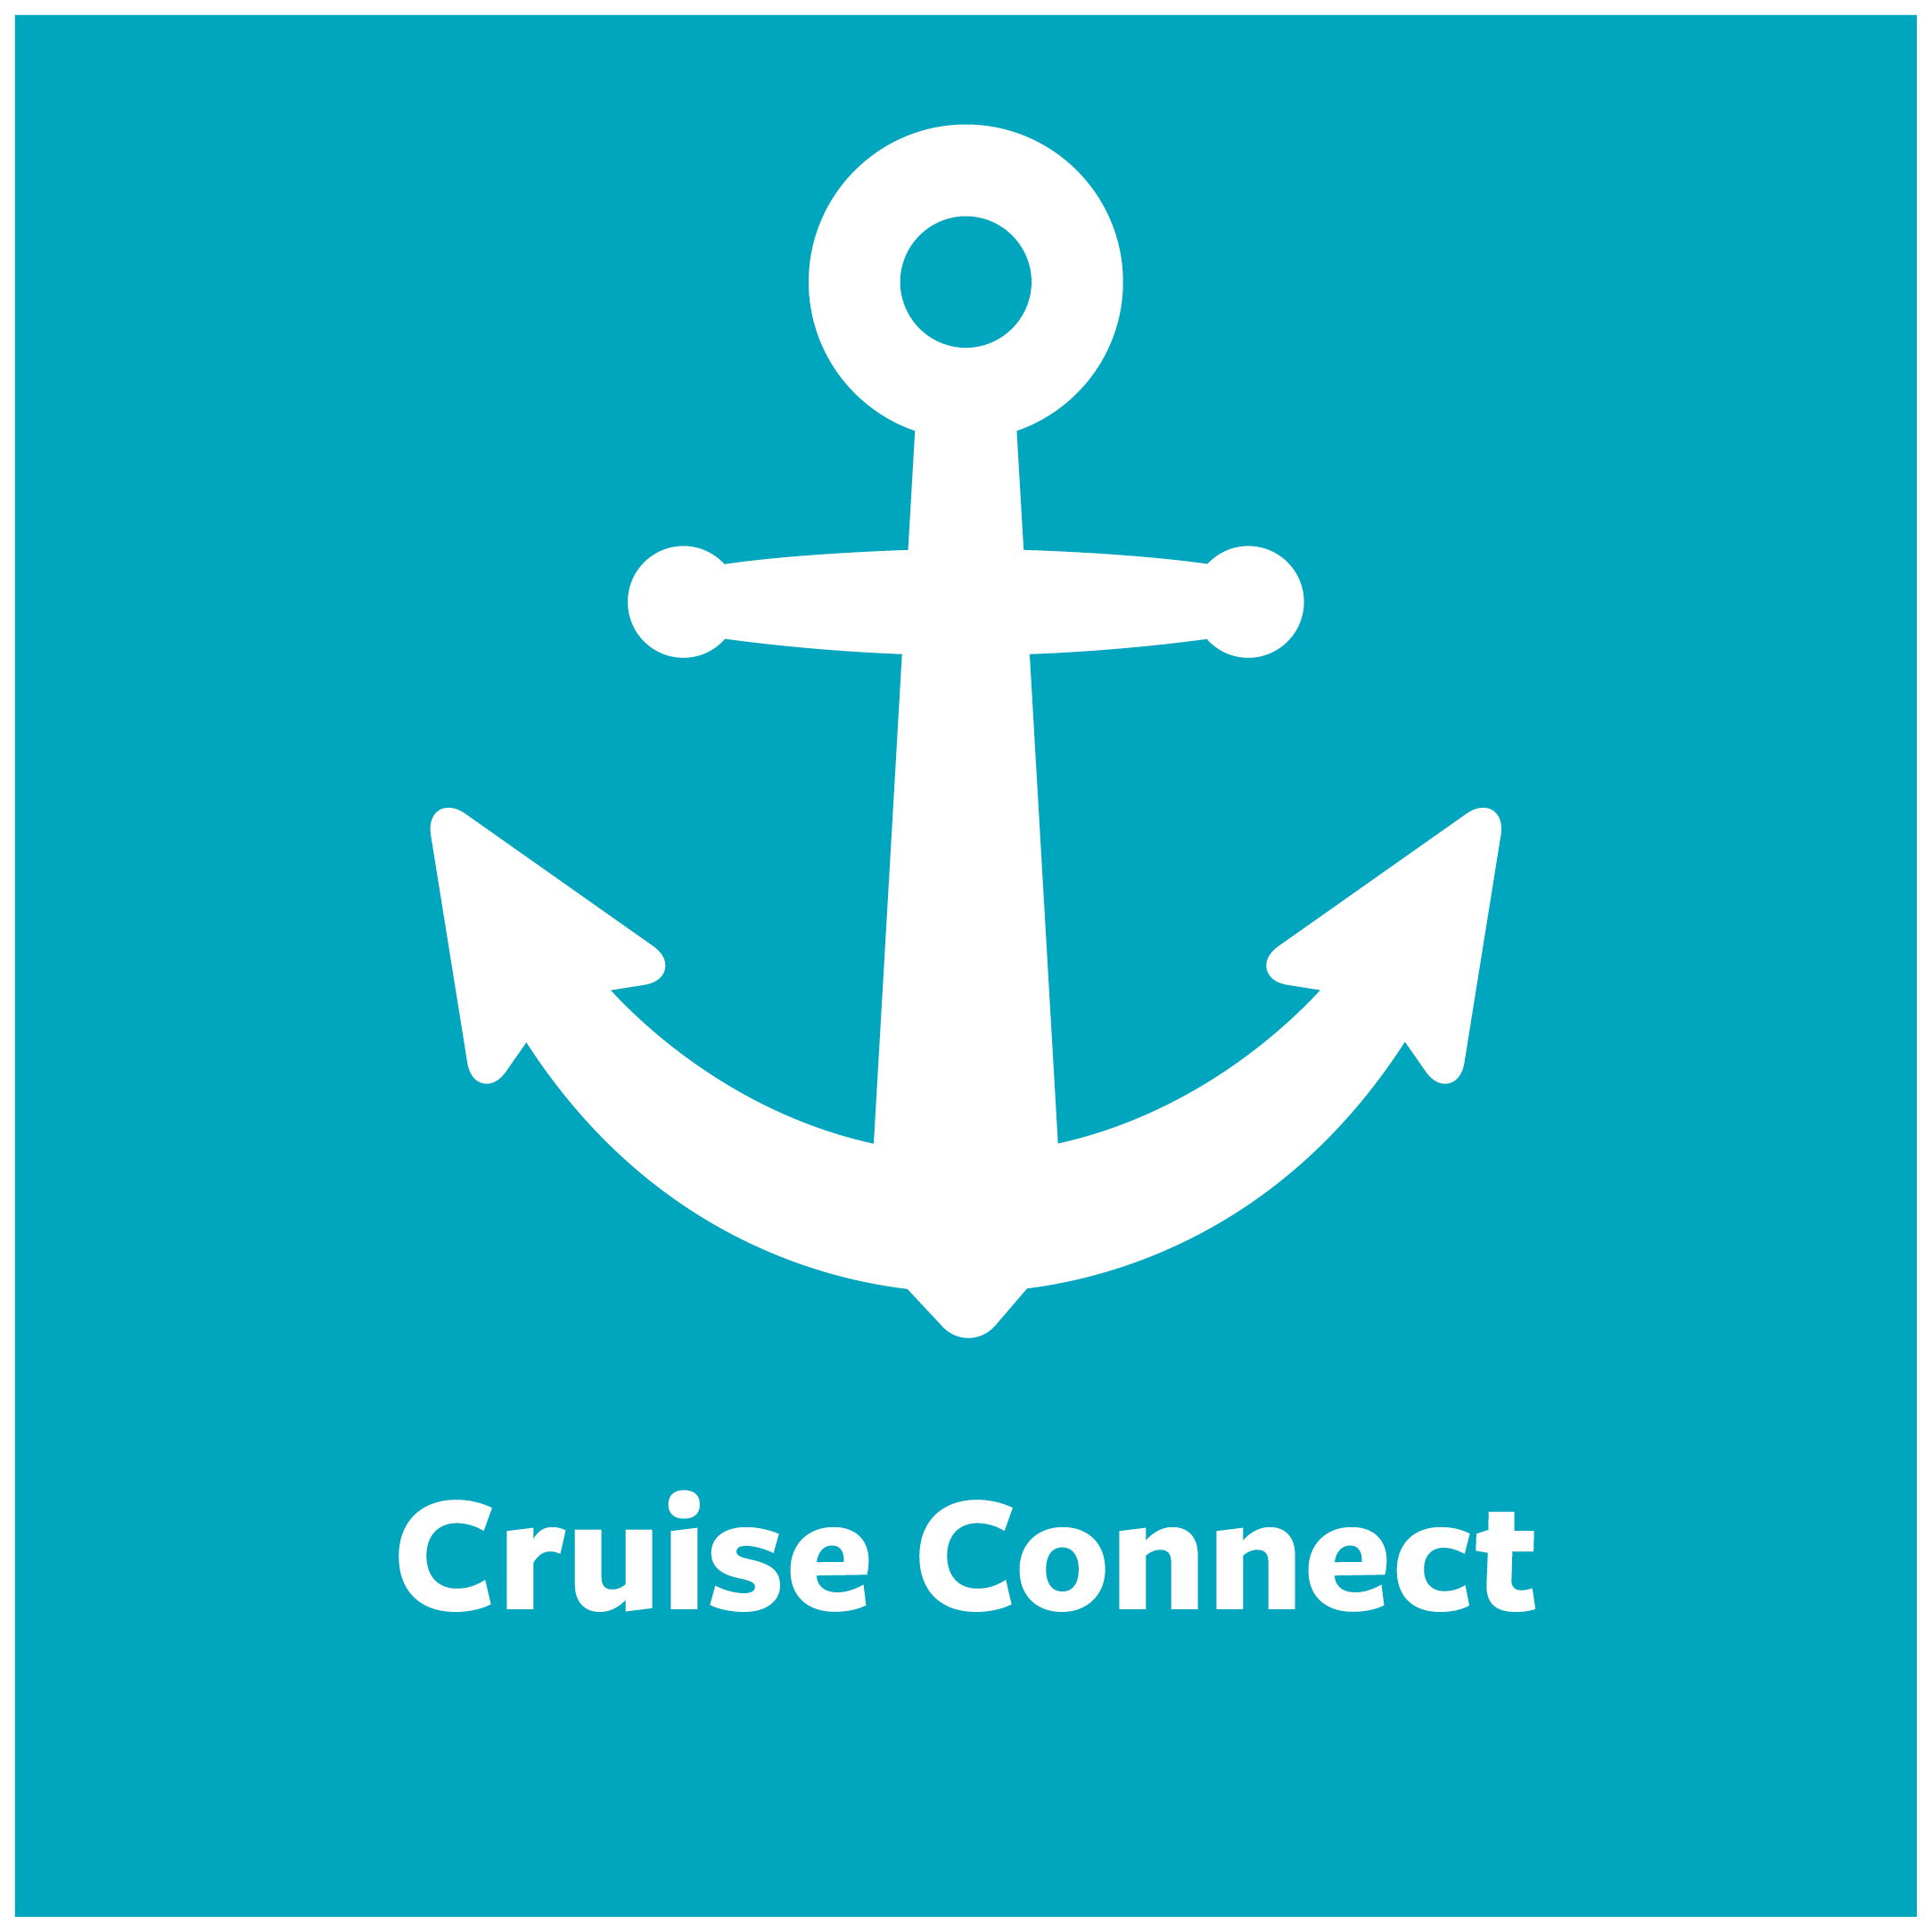 Cruise Connect